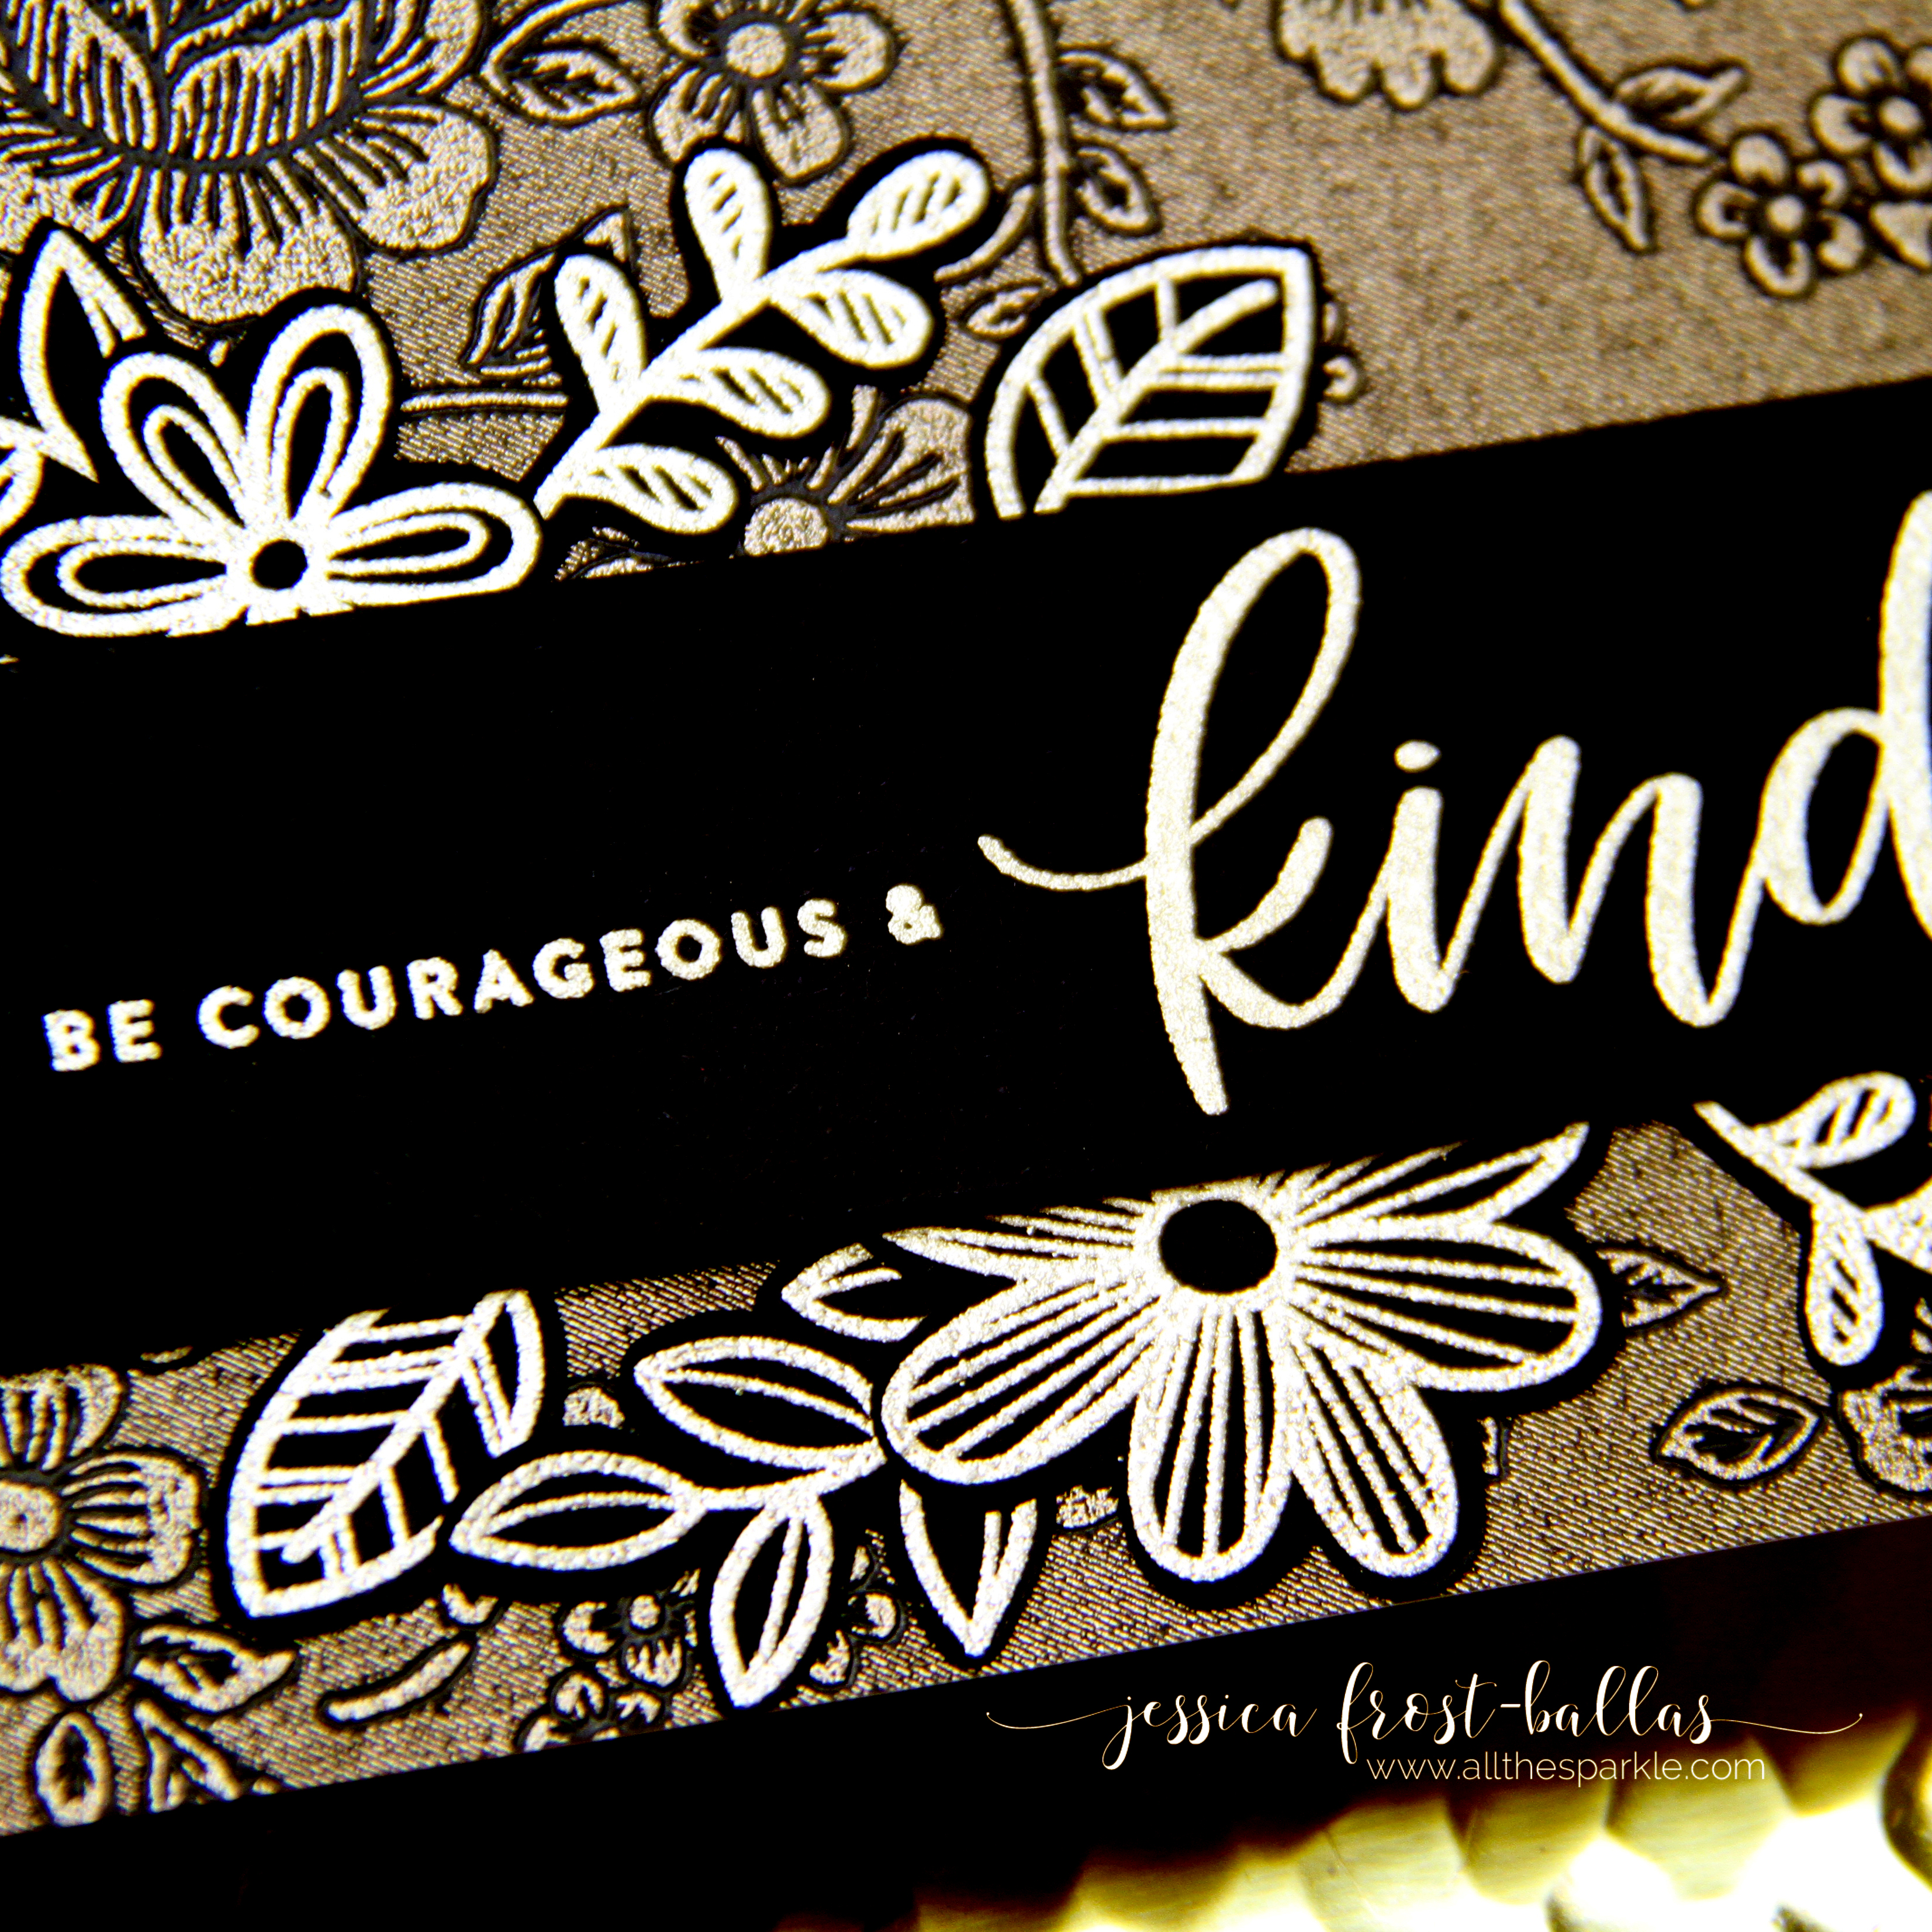 Be Courageous and Kind by Jessica Frost-Ballas for Simon Says Stamp